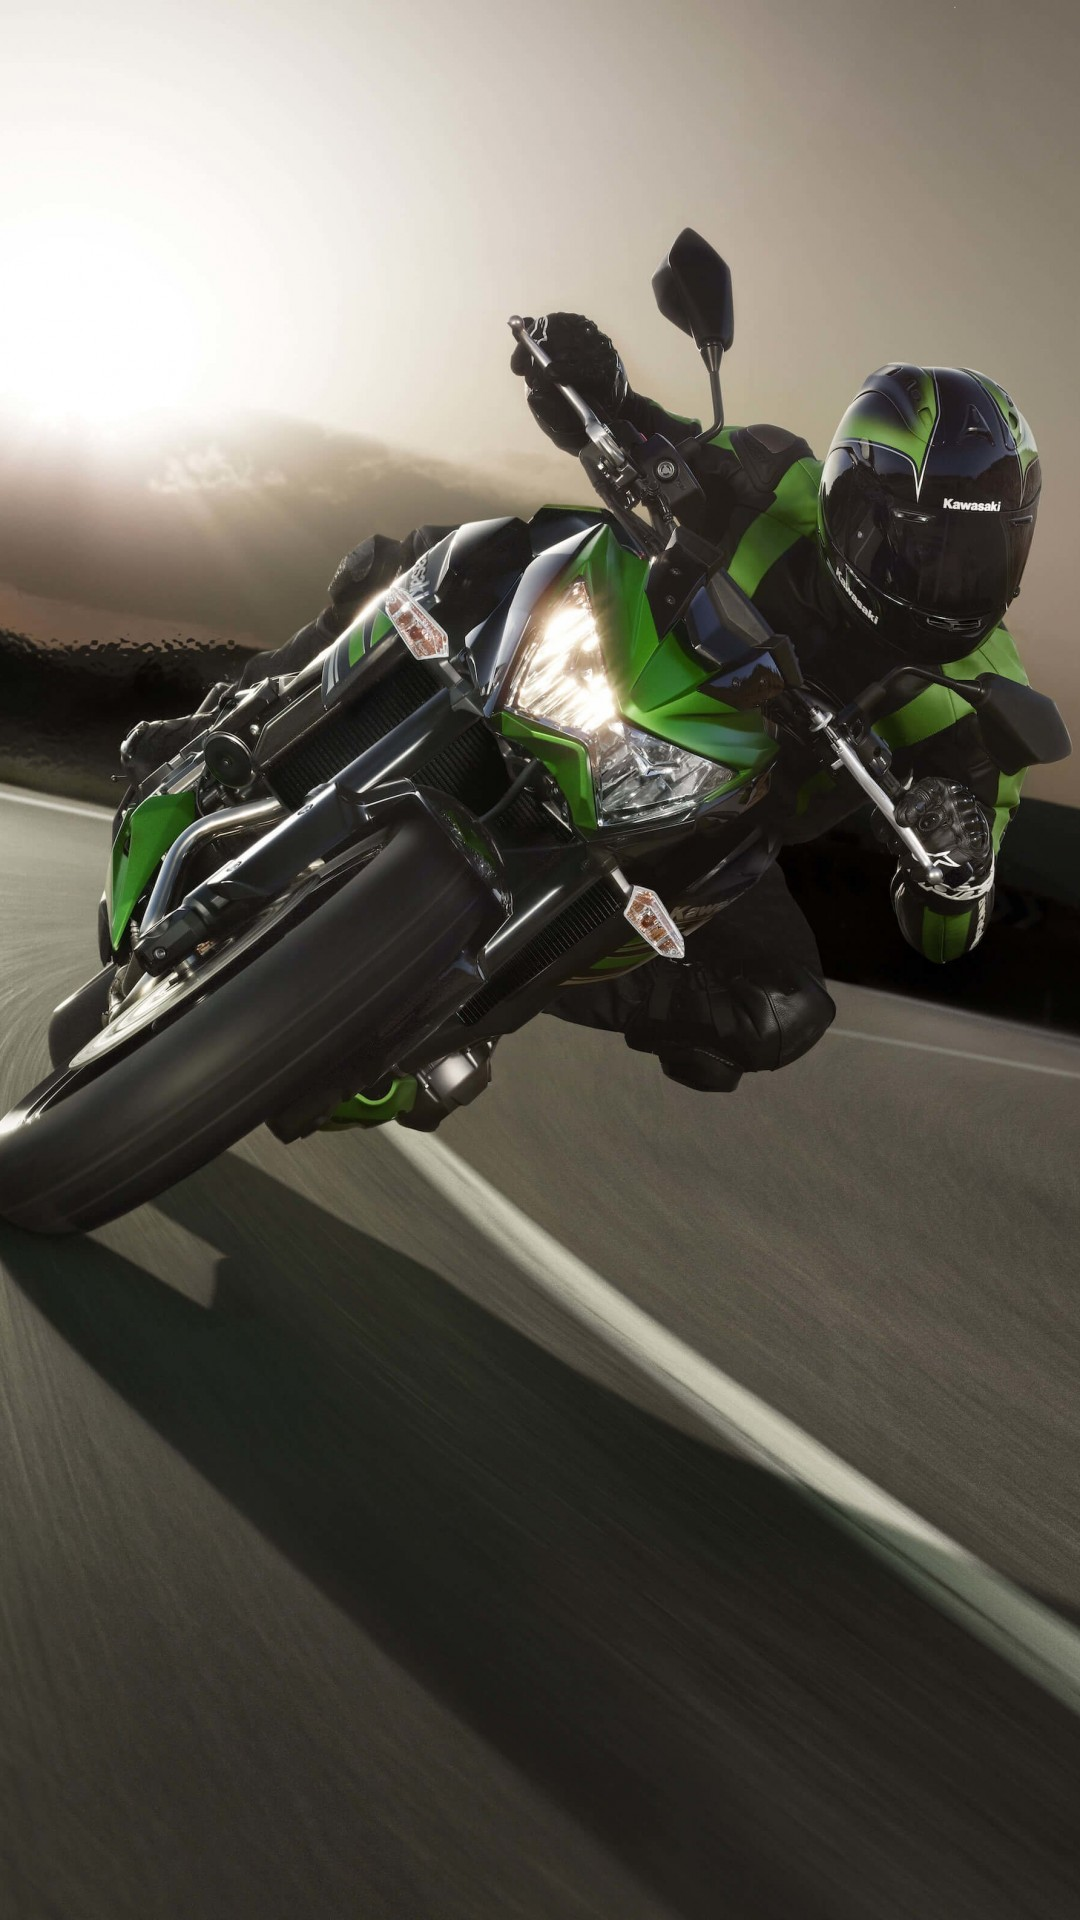 Kawasaki Ninja ZX-10R Wallpaper for HTC One